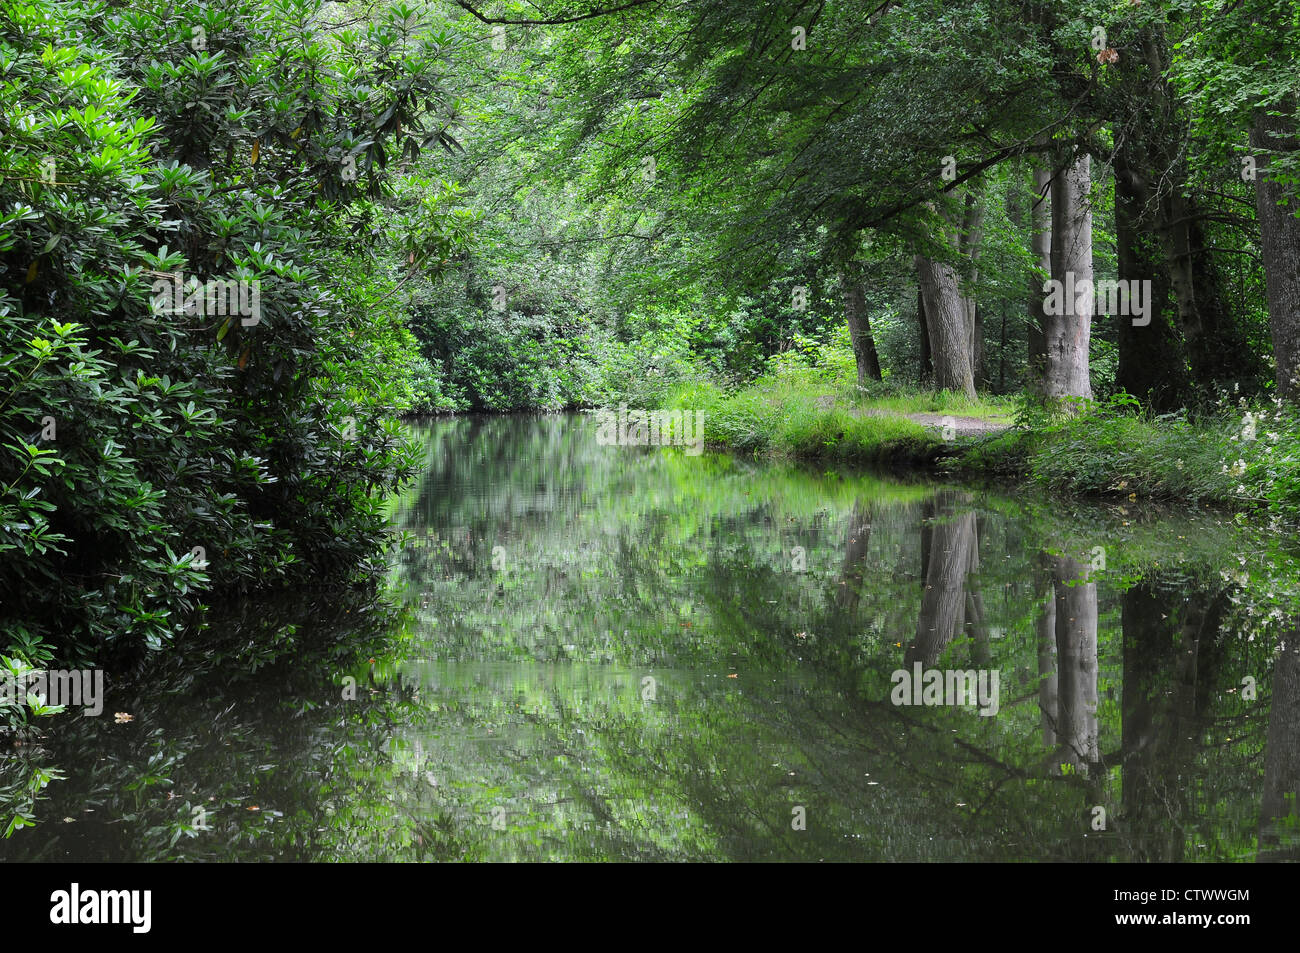 A view of the Basingstoke canal Hampshire UK - Stock Image